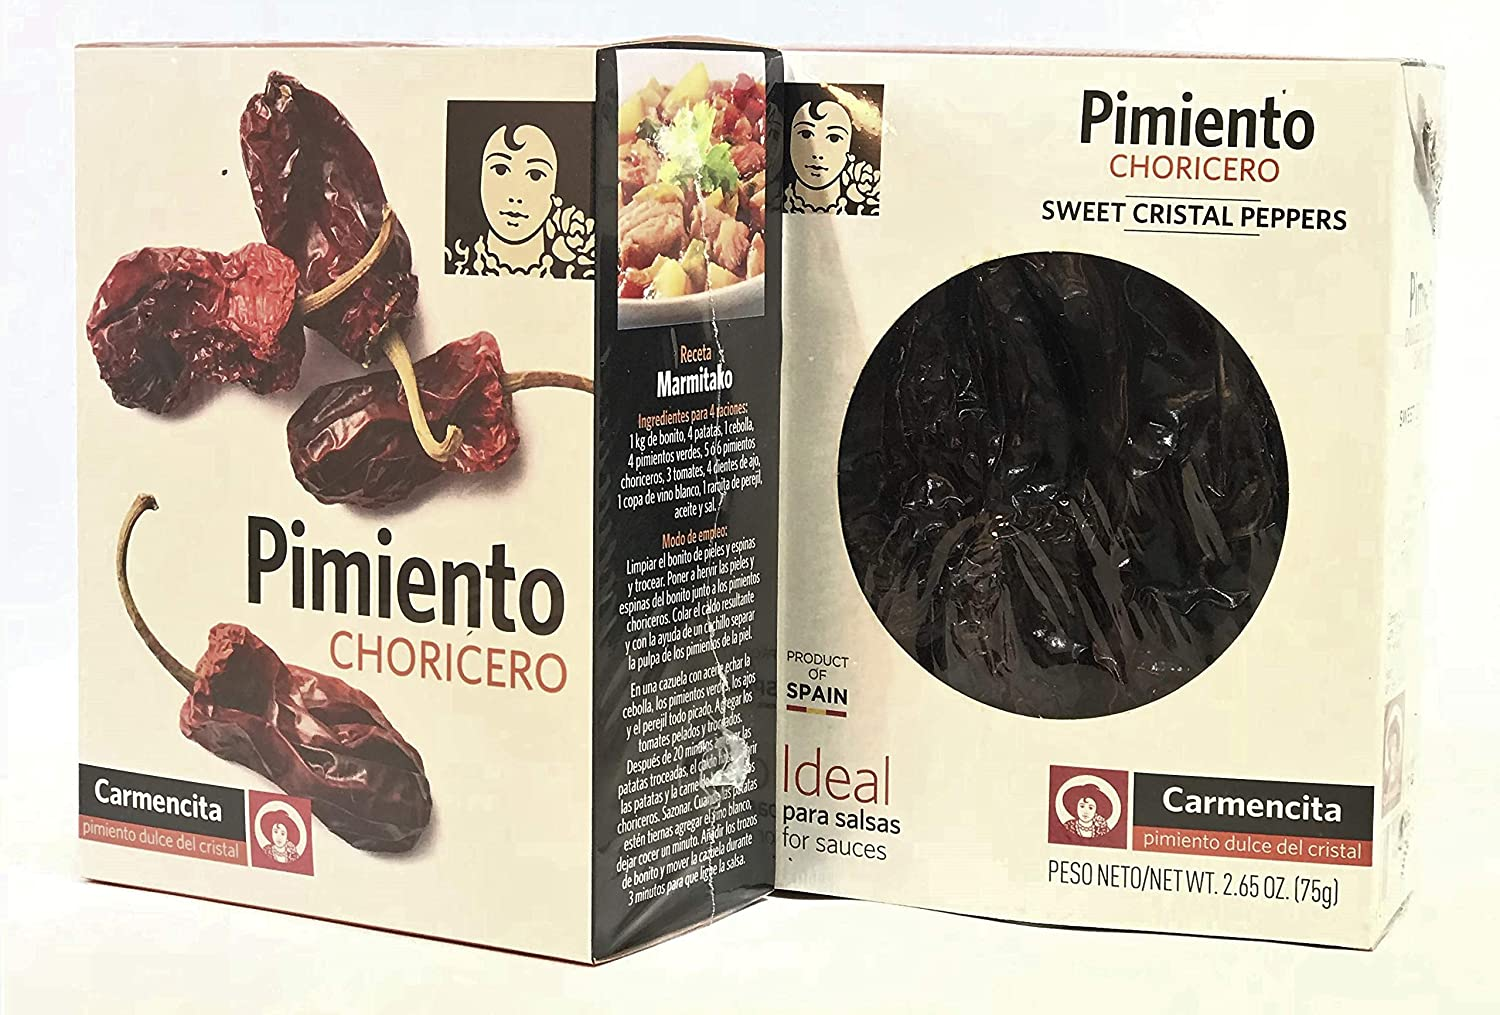 Pimientos Choriceros by Carmencita 2.65 oz. Pack of 2: Amazon.com: Grocery & Gourmet Food